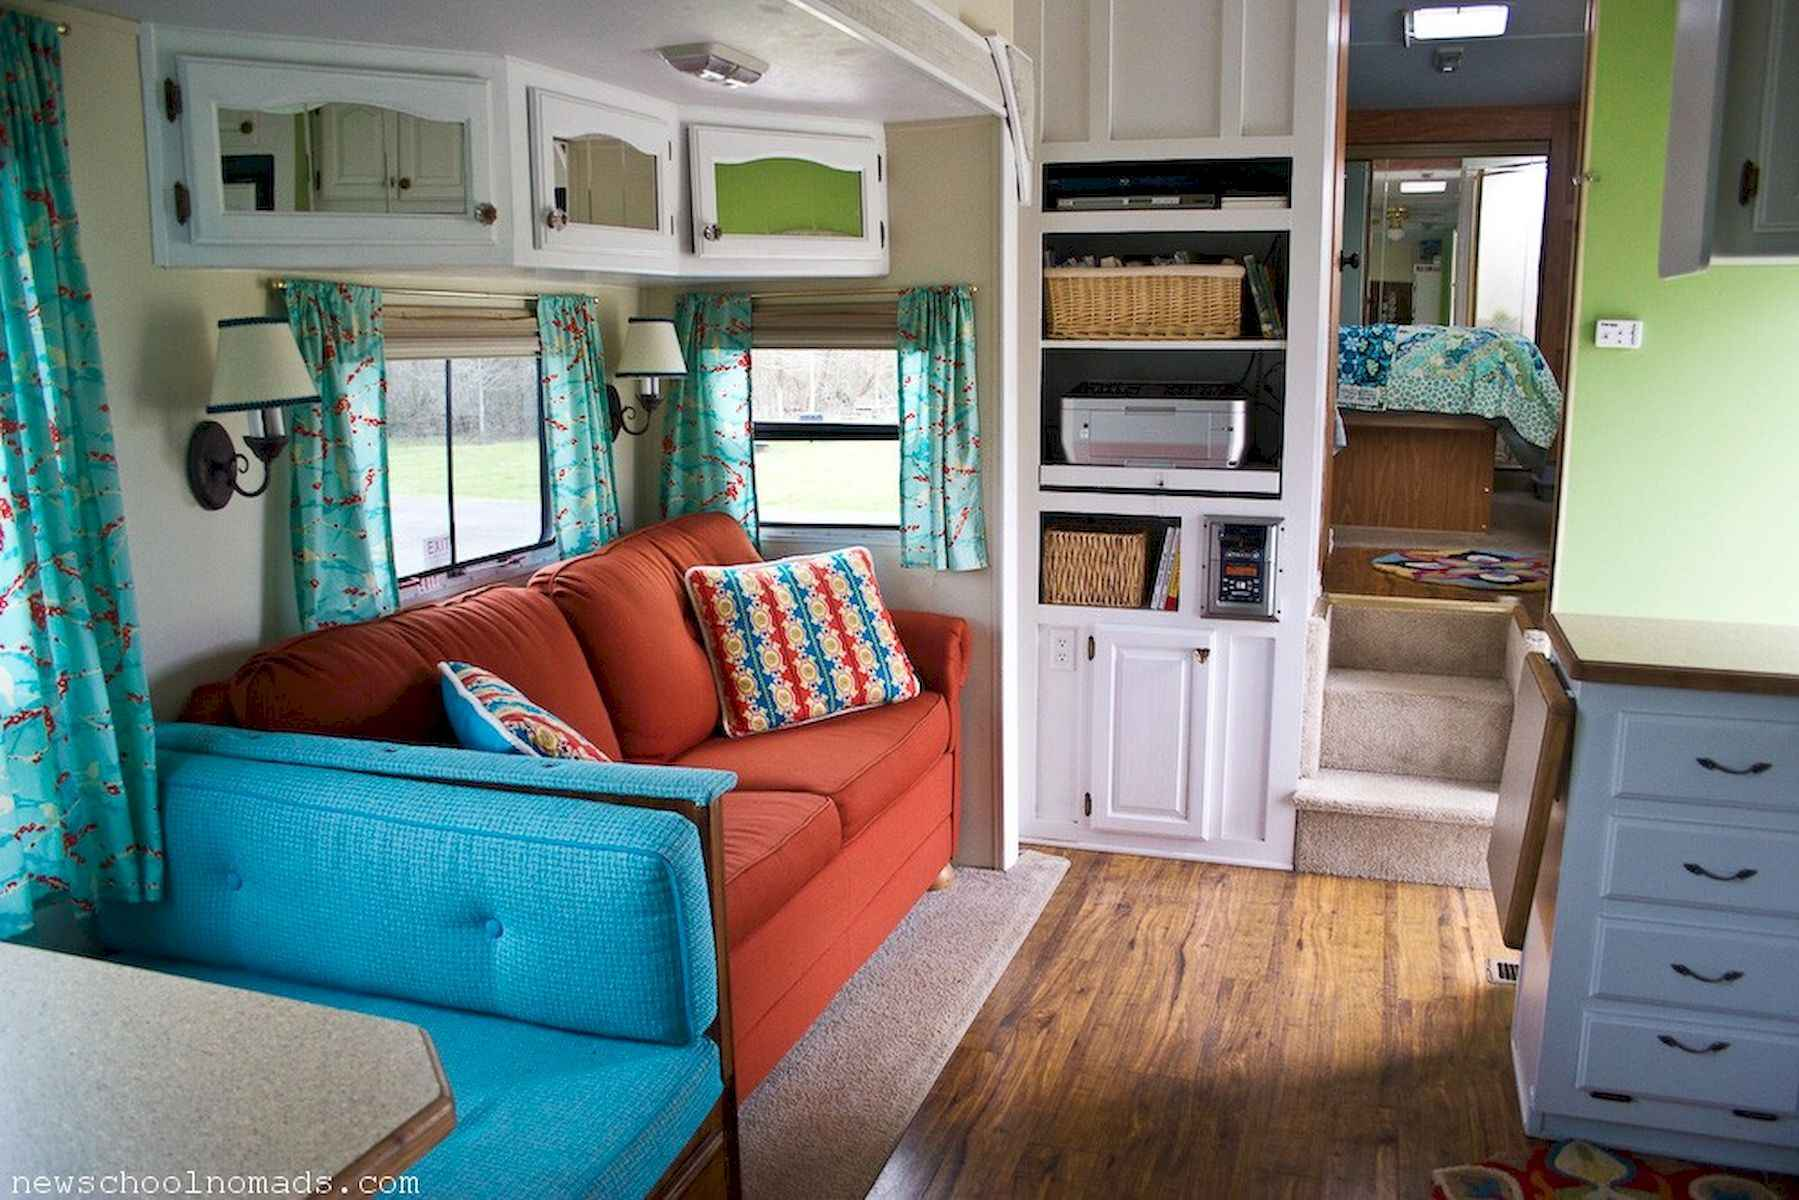 70 Stunning RV Living Camper Room Ideas Decorations Make Your Summer Awesome (68)